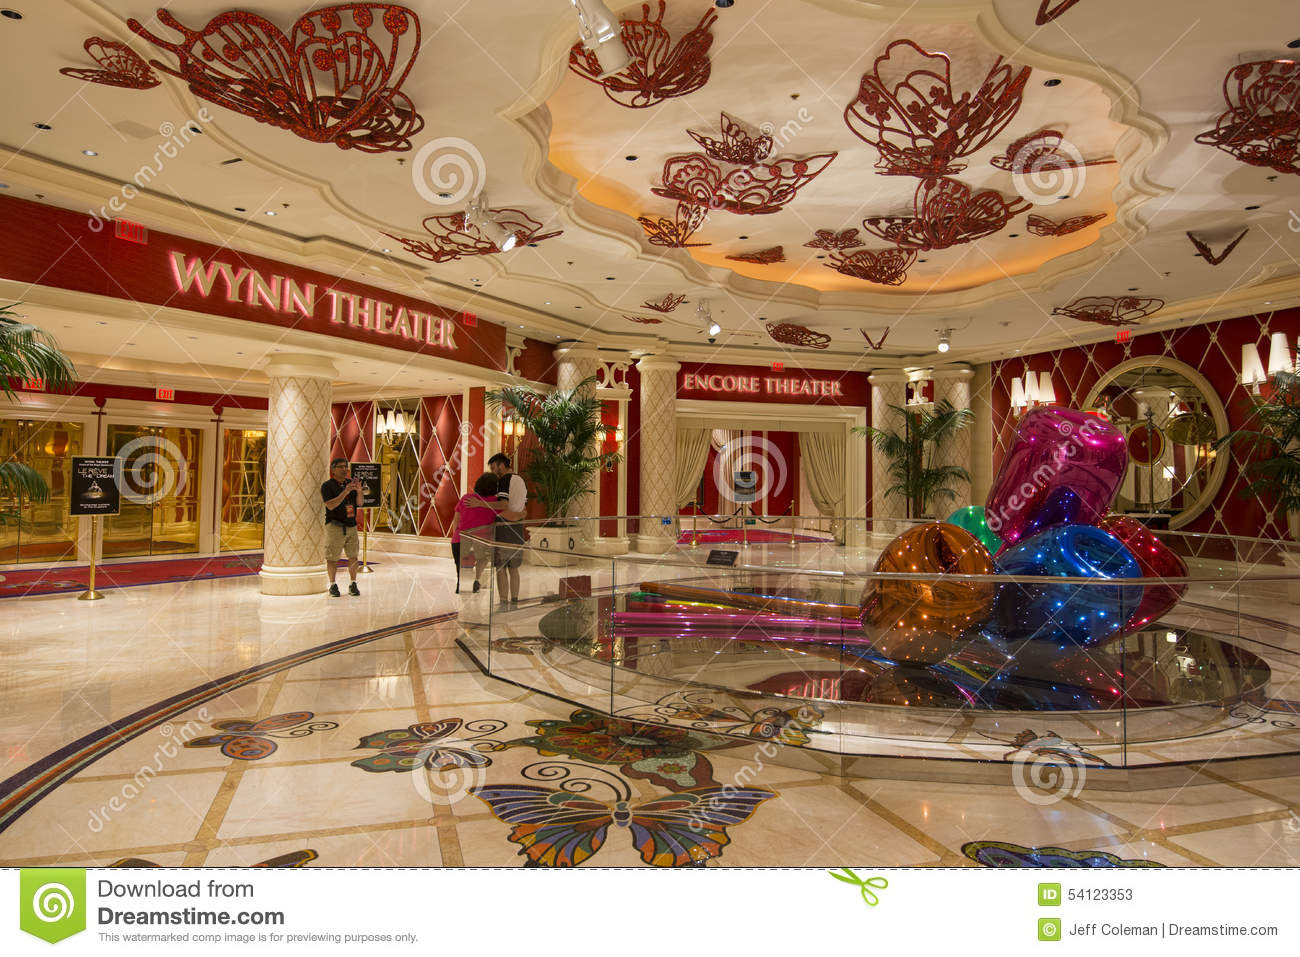 A View Of The Wynn And Encore Theaters Inside Of The Wynn Hotel In